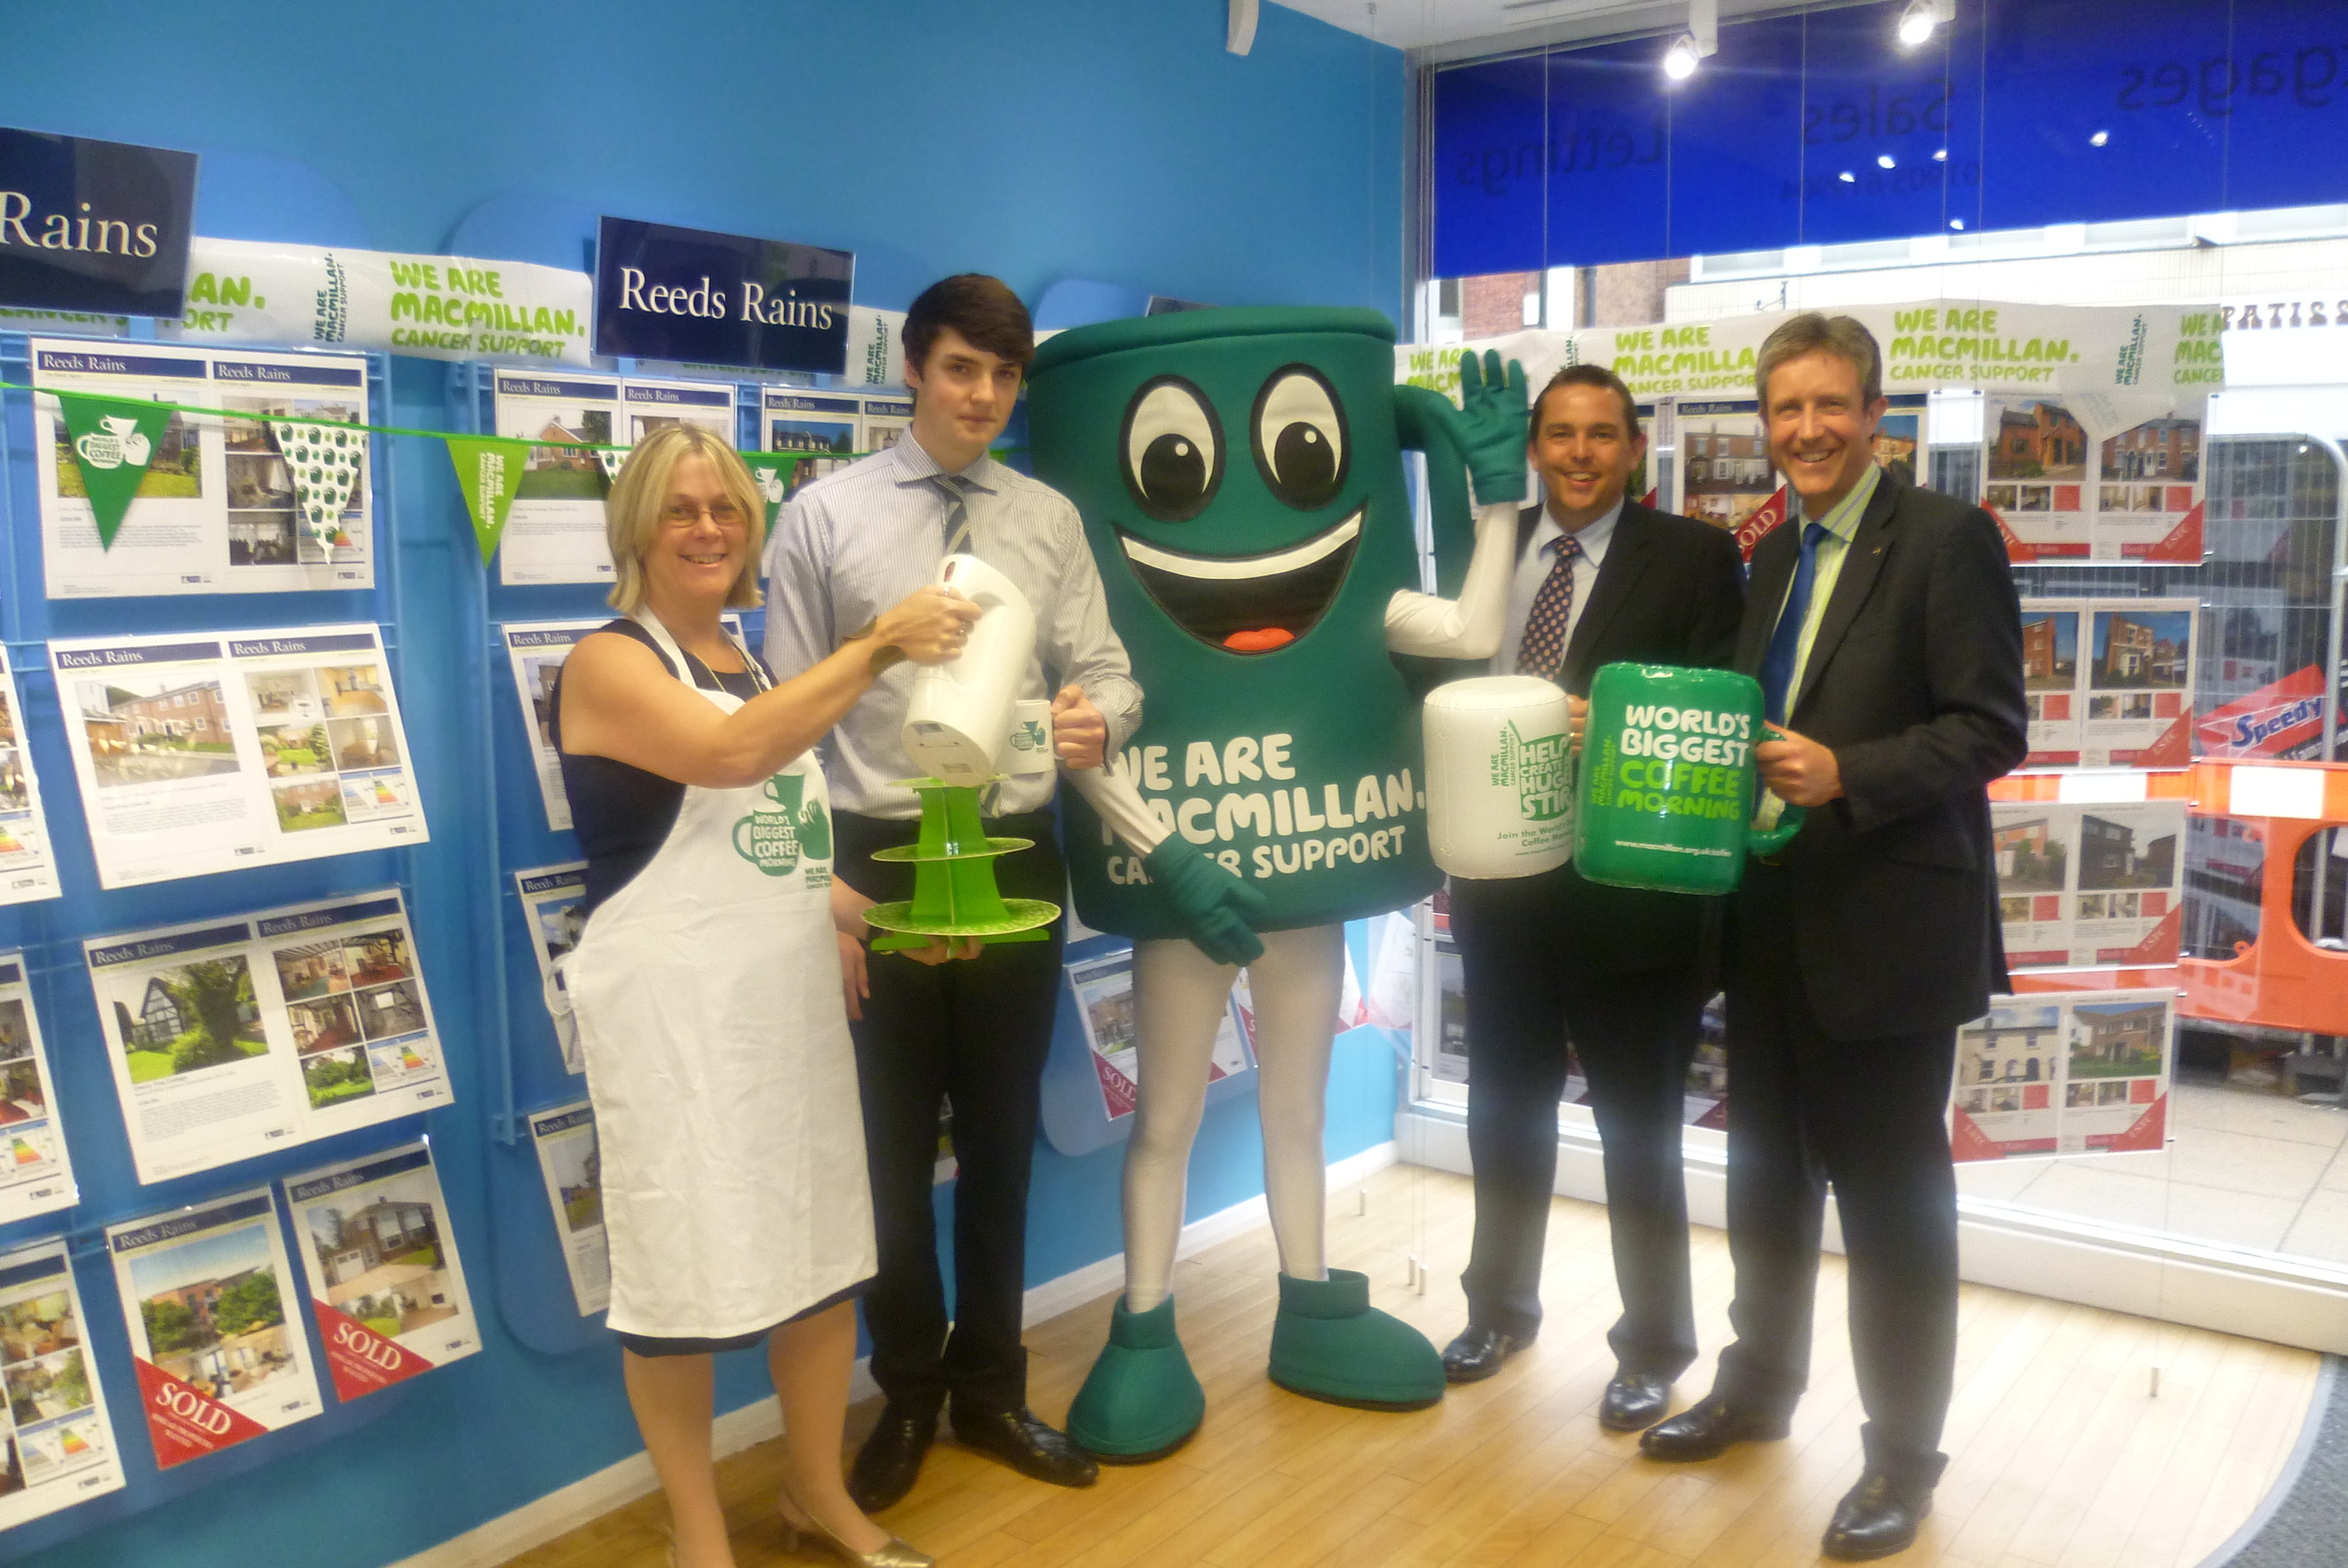 Reeds Rains Worcester To Support Macmillan Cancer Support At Coffee Morning